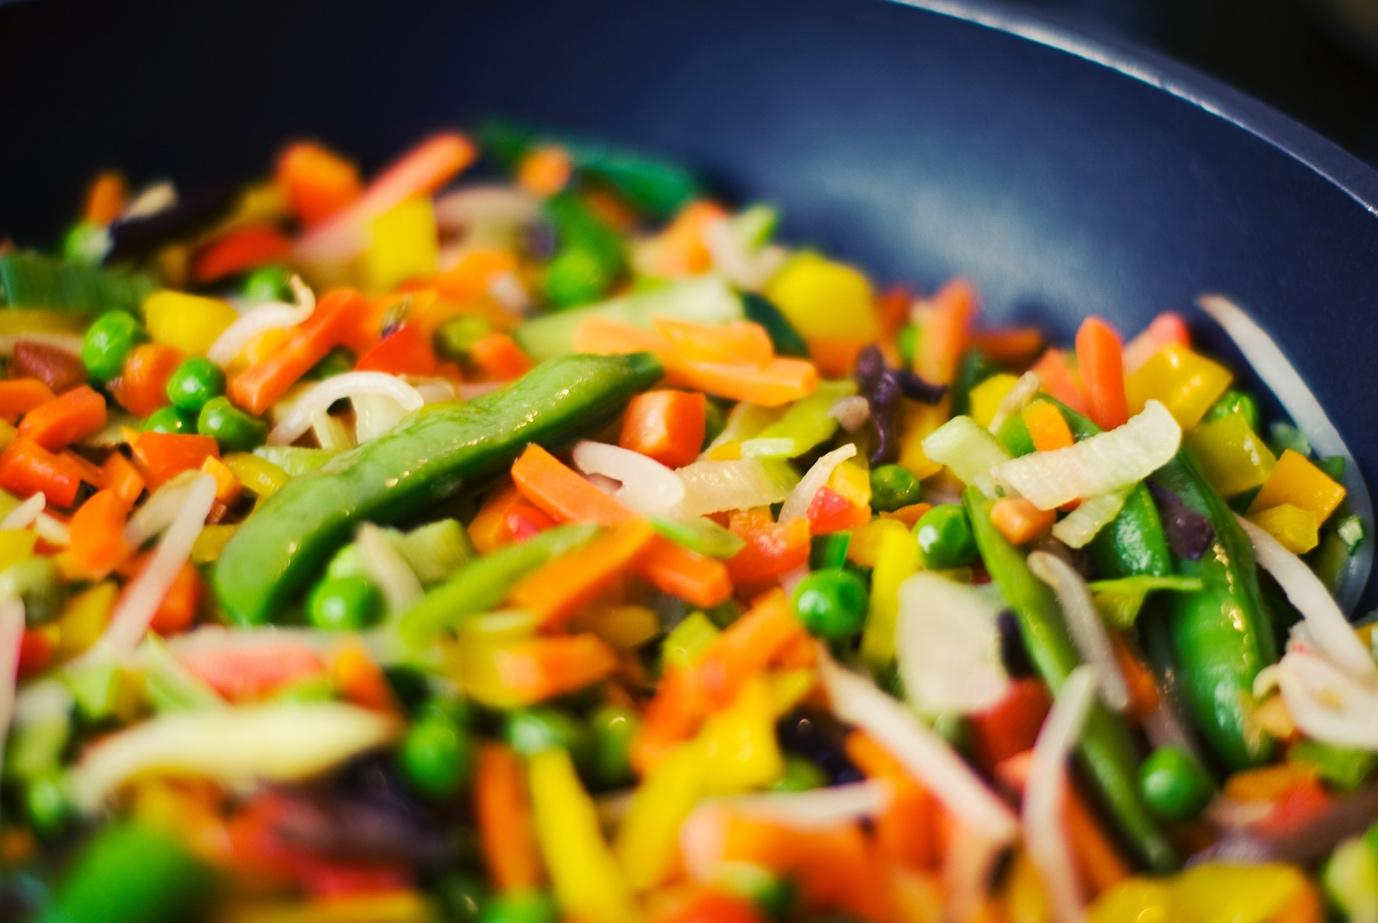 Sauté Secrets - How to Choose the Best Frypan for the Job